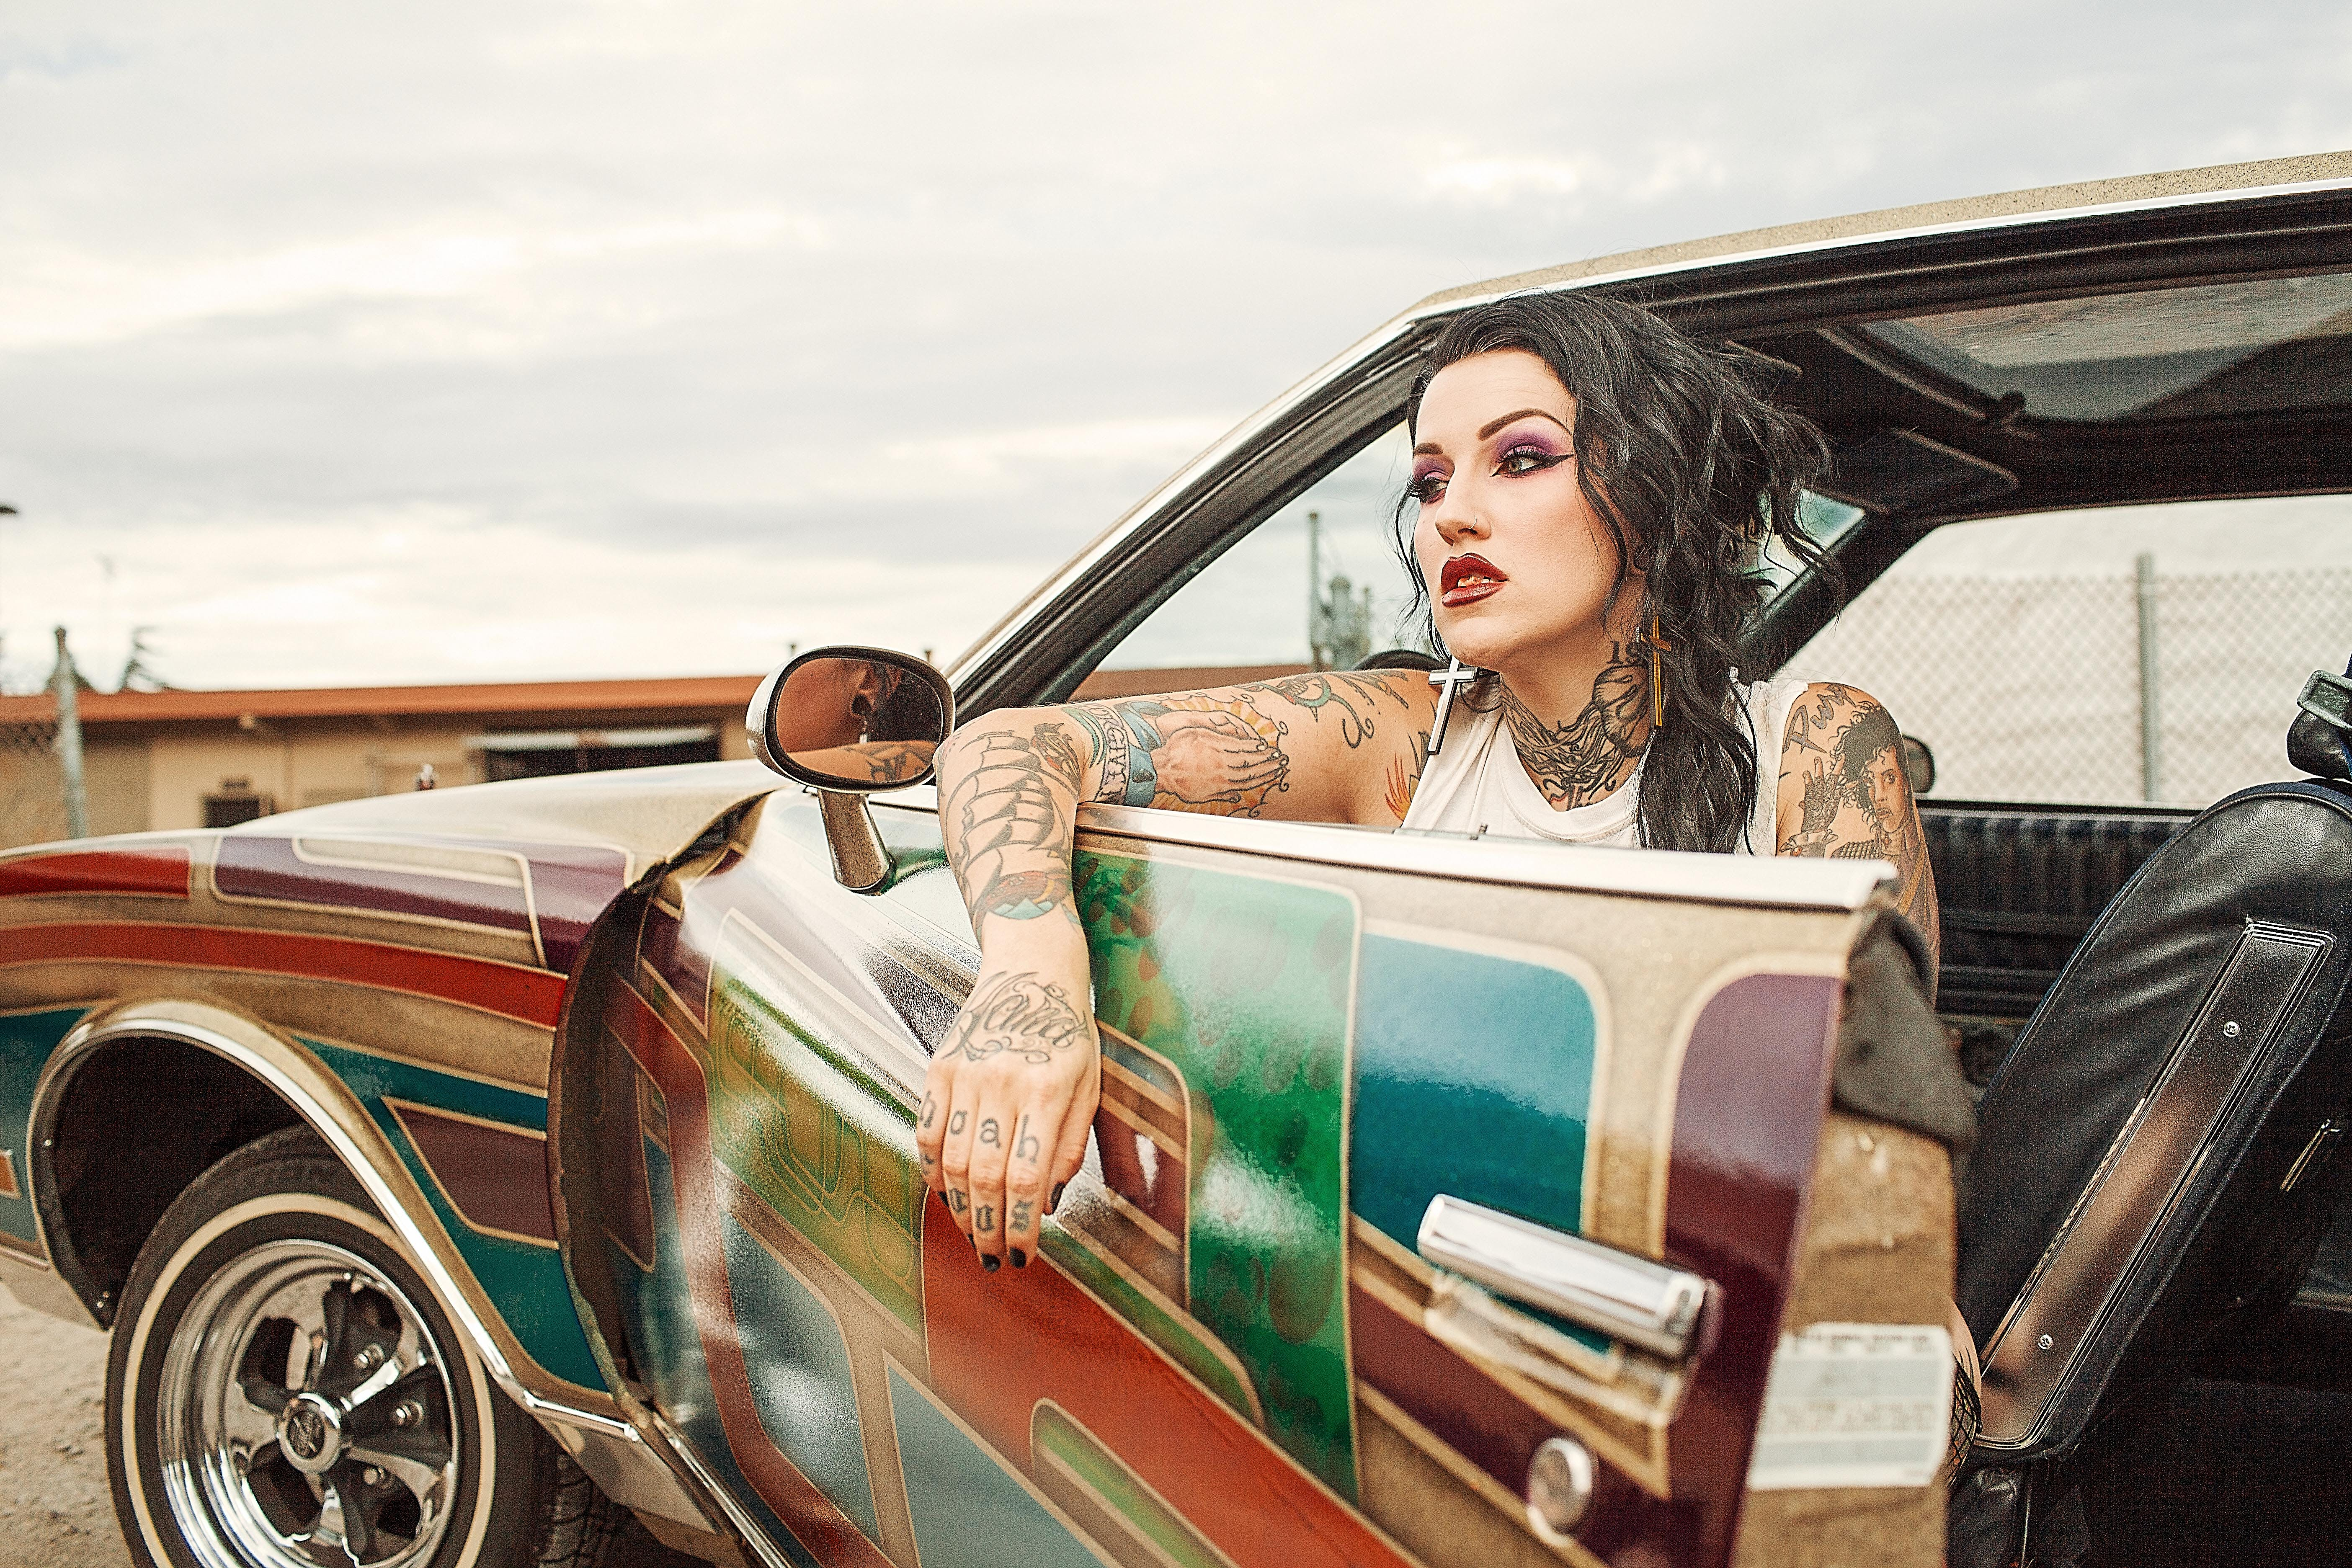 Woman With White Tank Top Inside Classic Multicolored Car